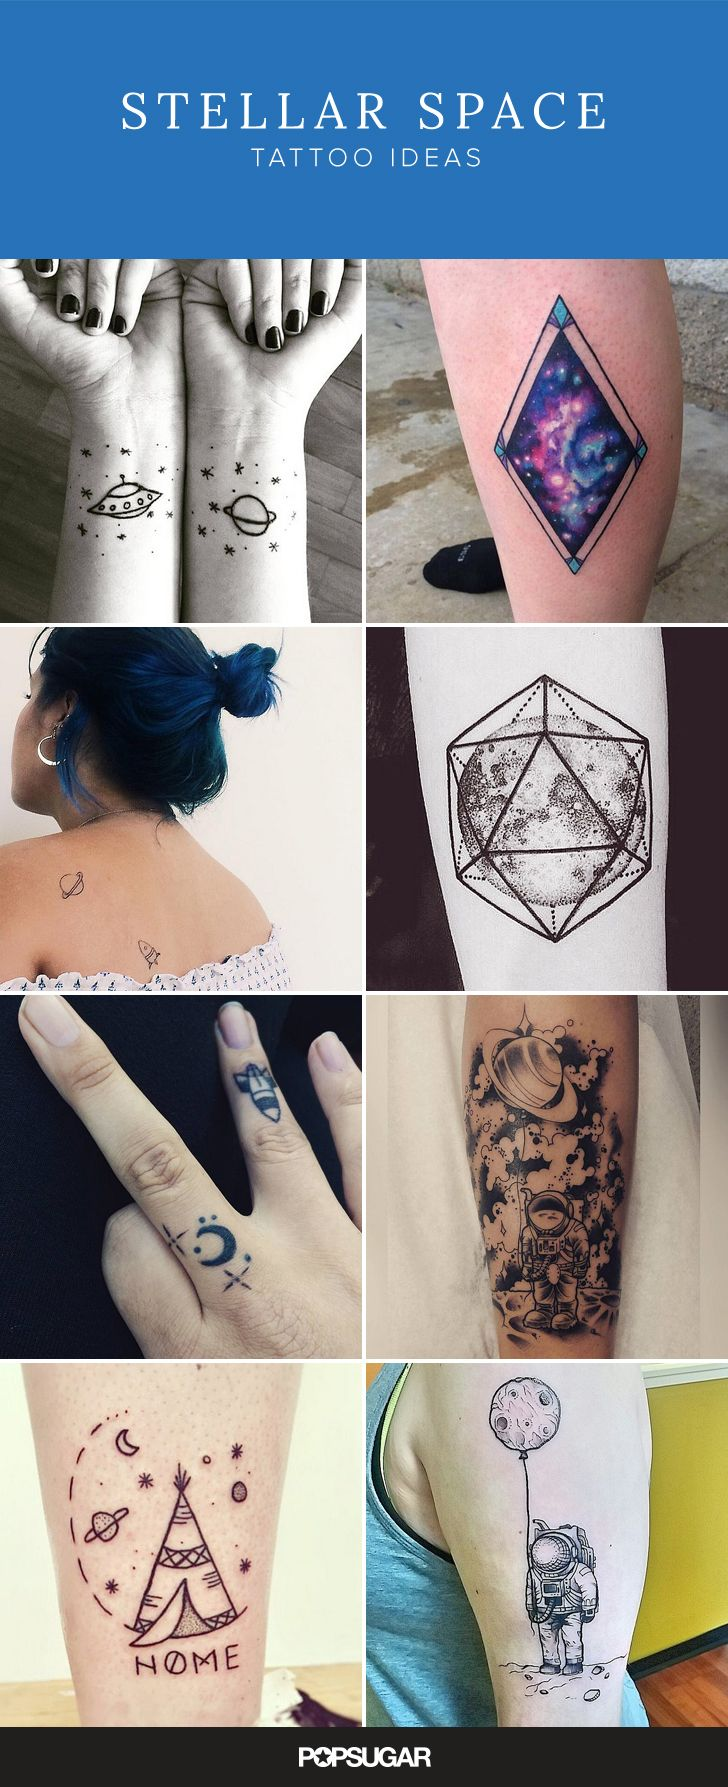 Out of this world space tattoo inspiration.